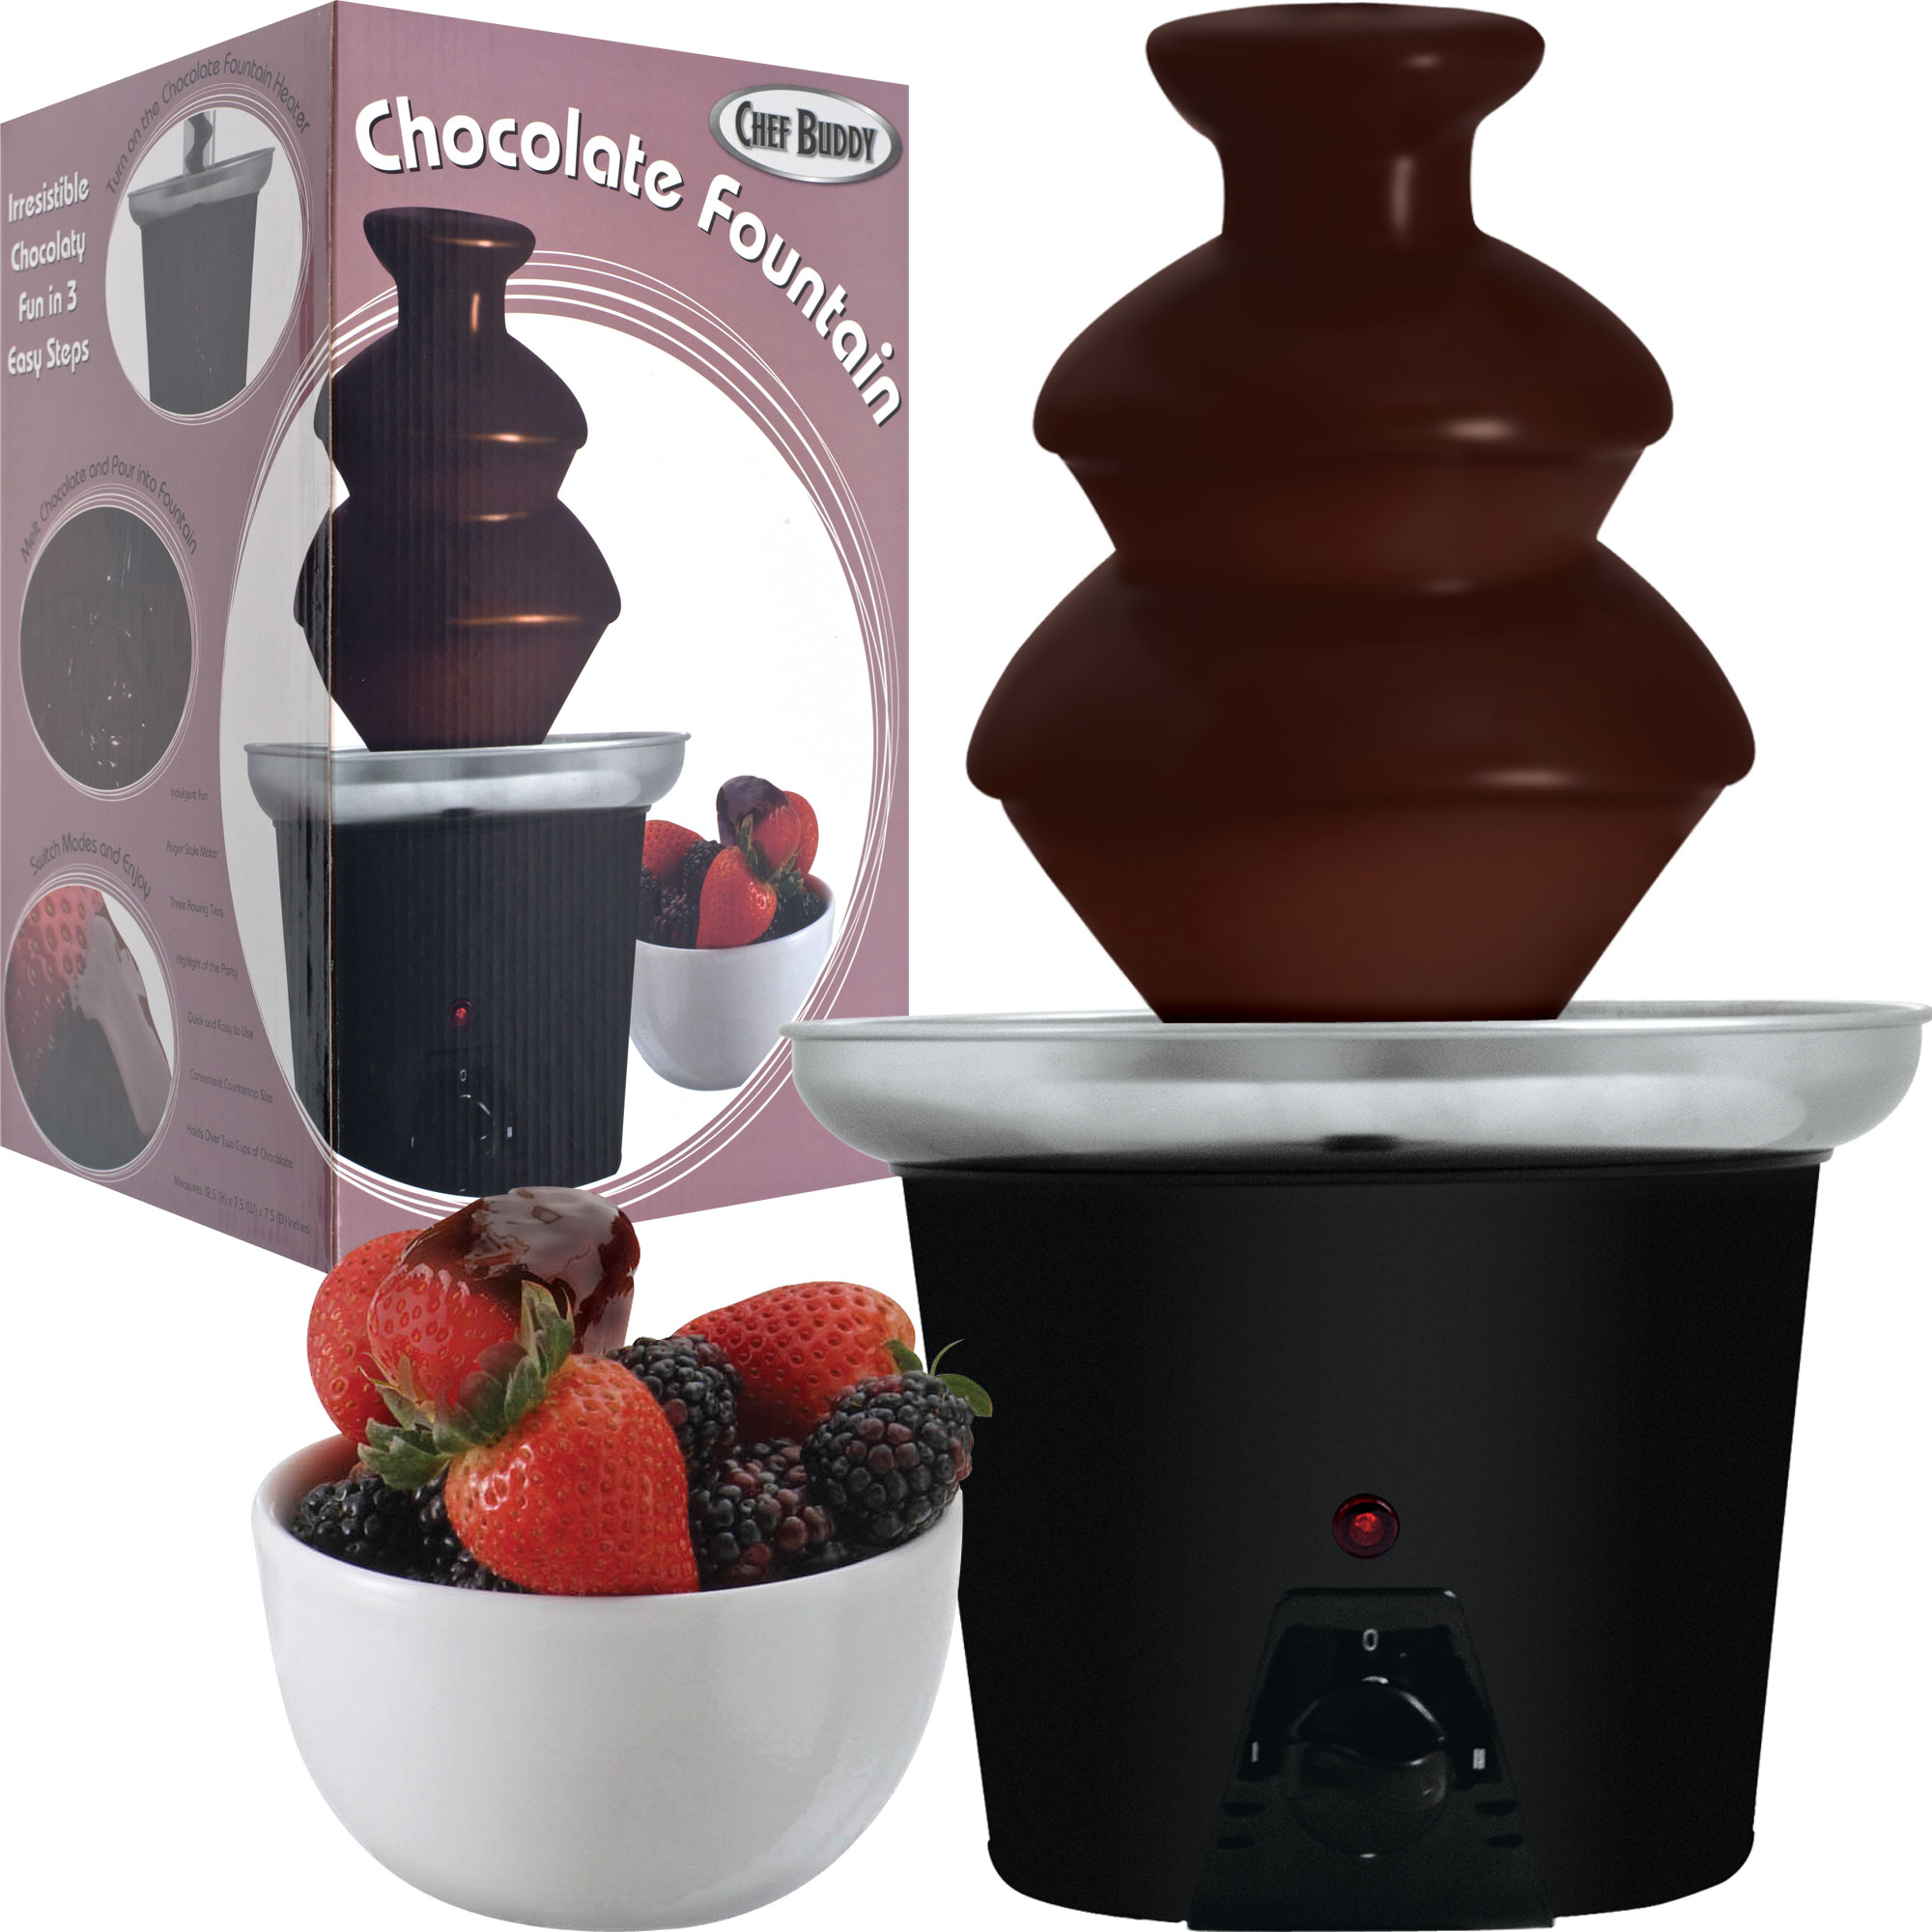 Chef Buddy Countertop Chocolate Fountain